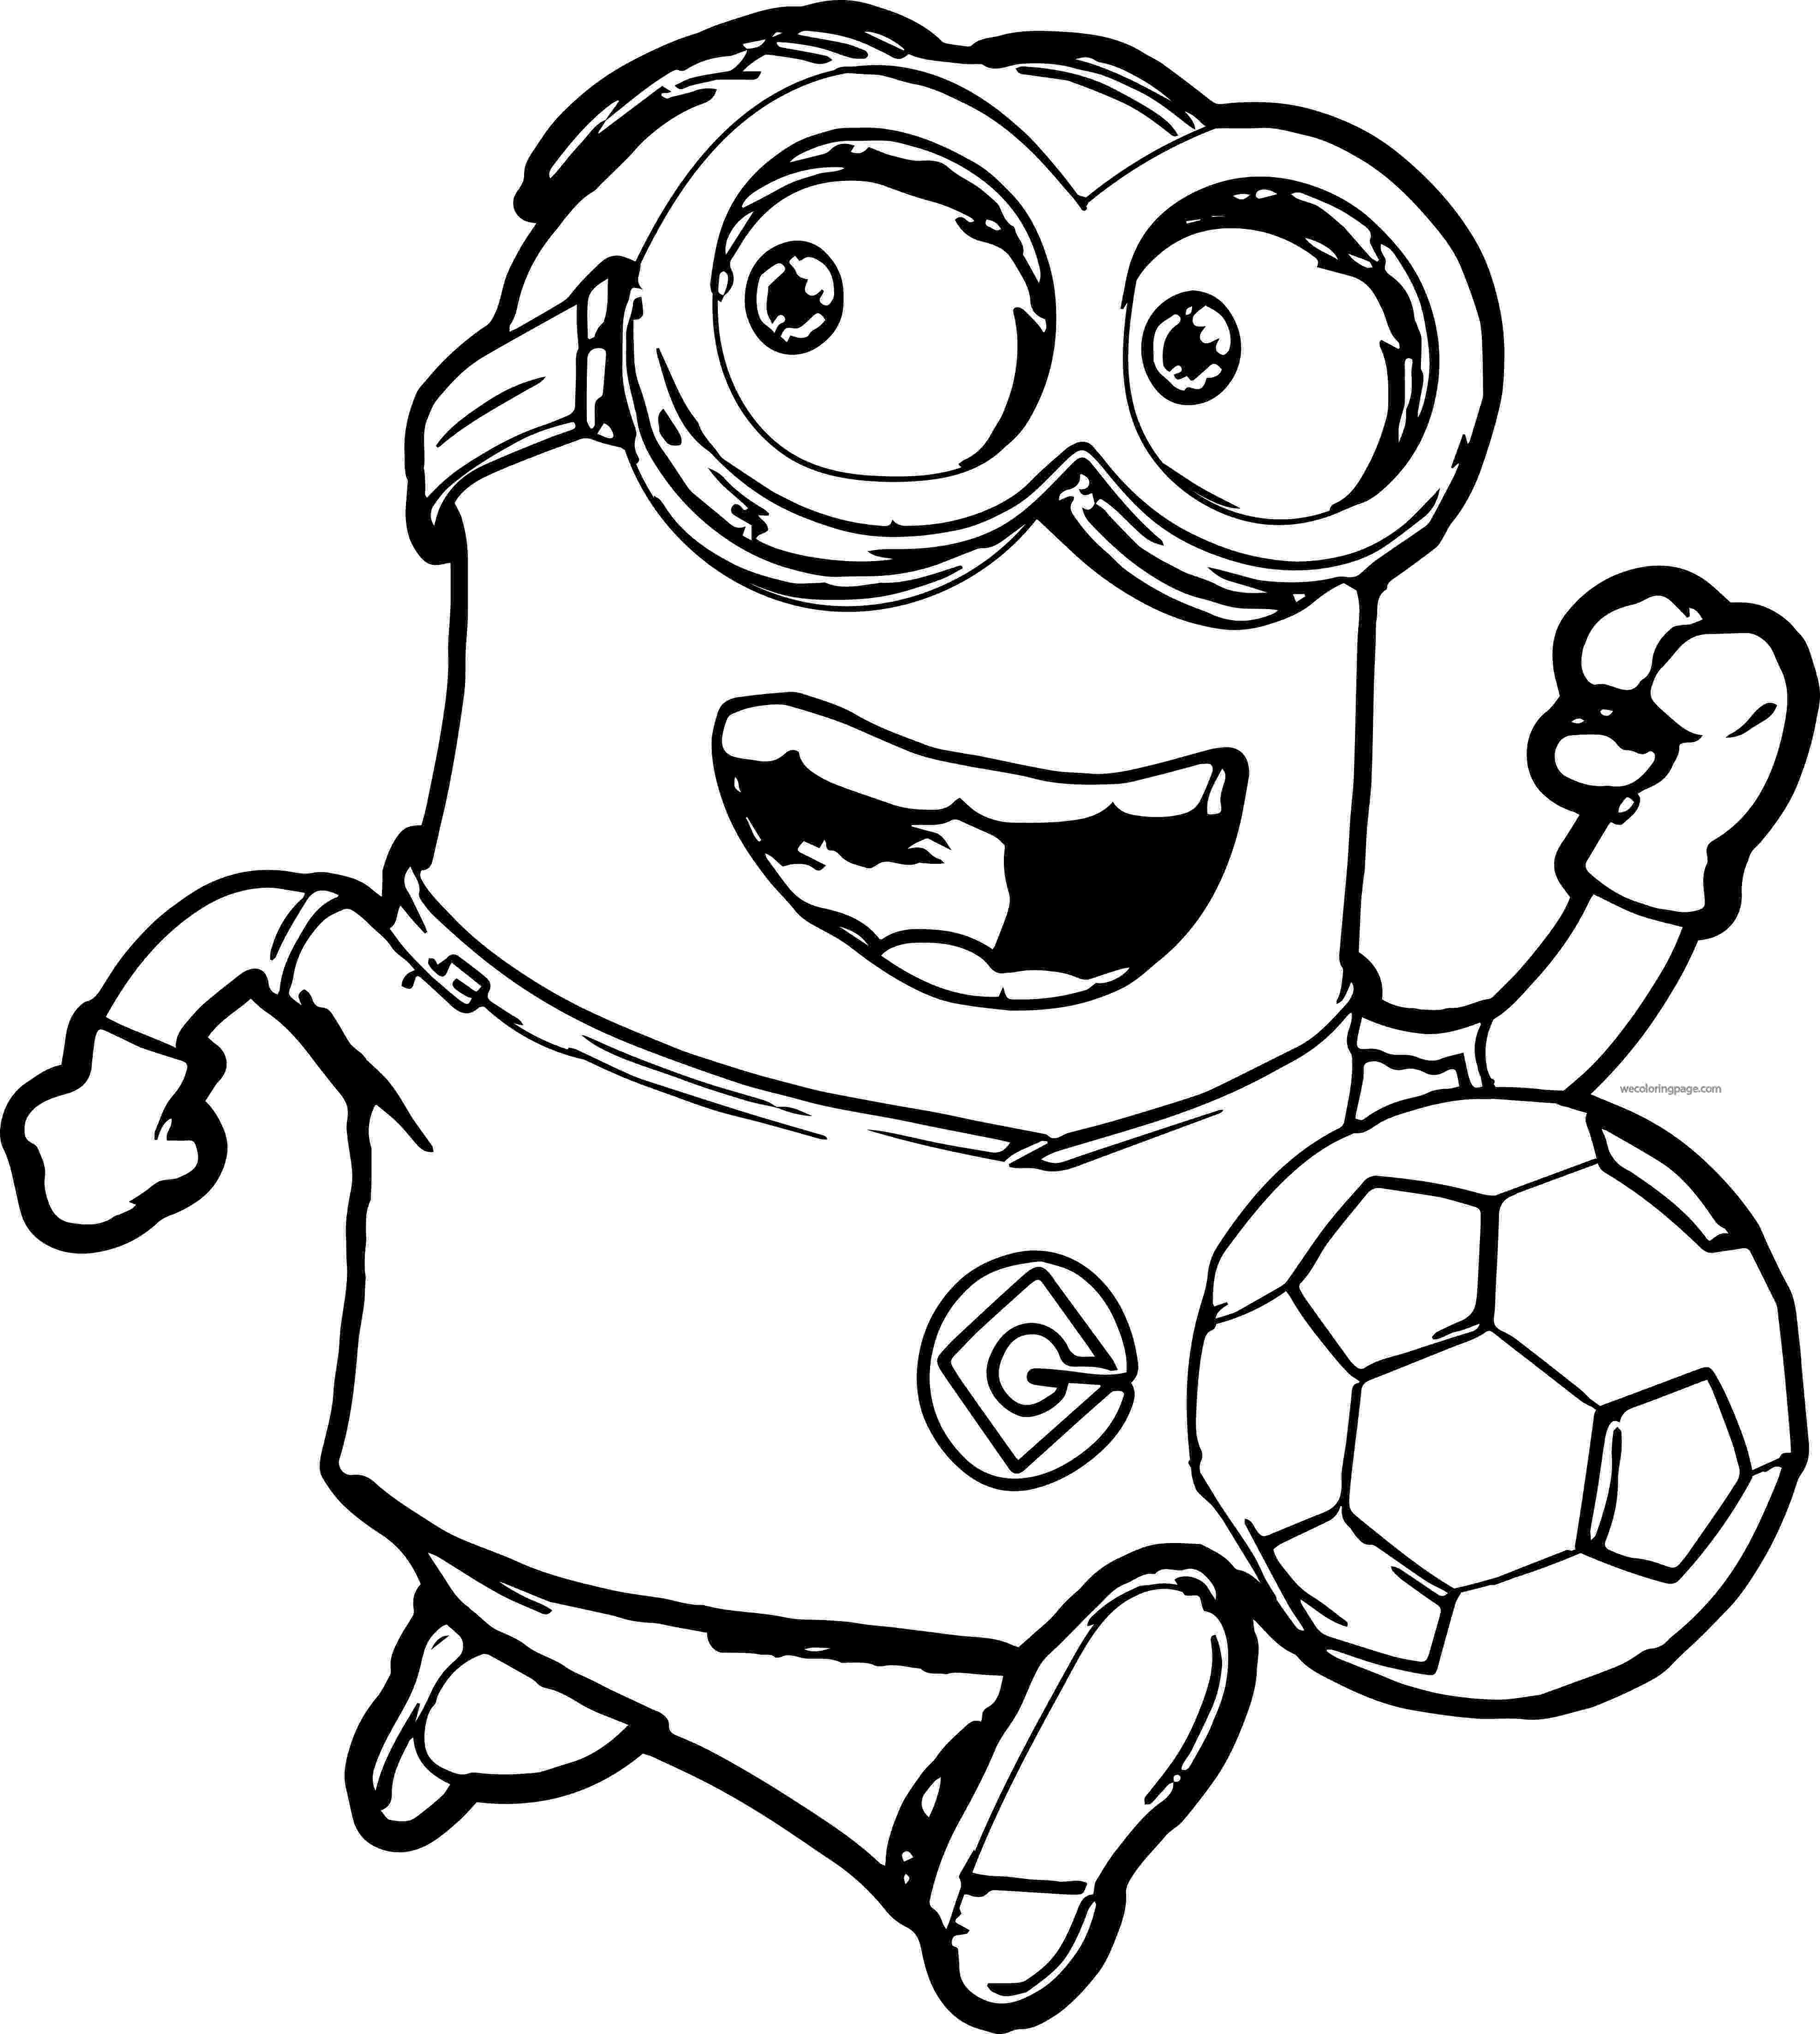 minions colouring pictures free minions printables minions colouring pictures